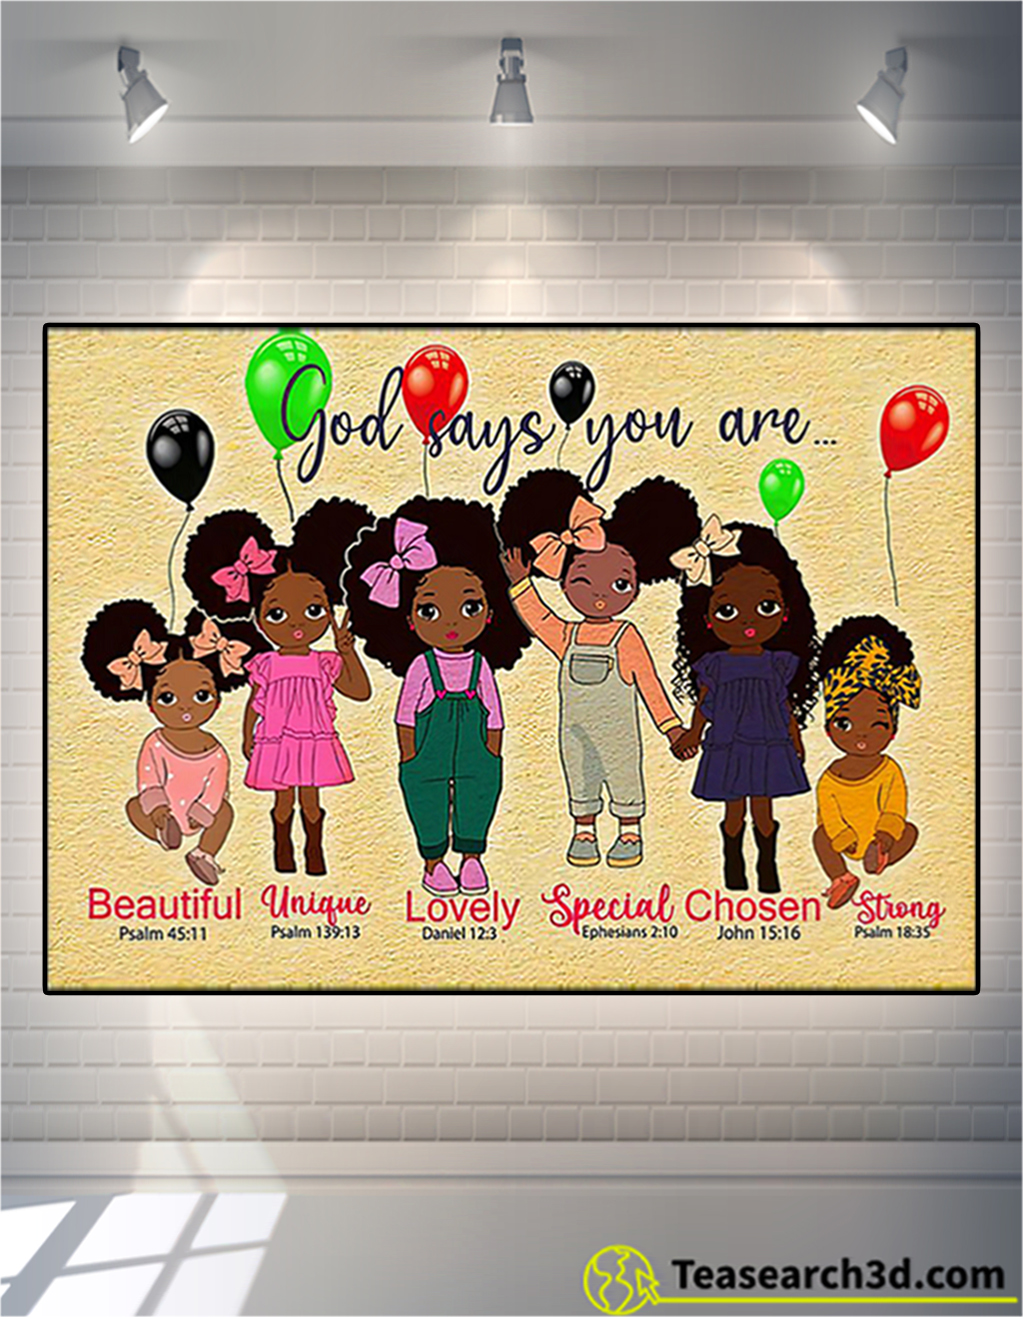 Black girl godchild says you are poster